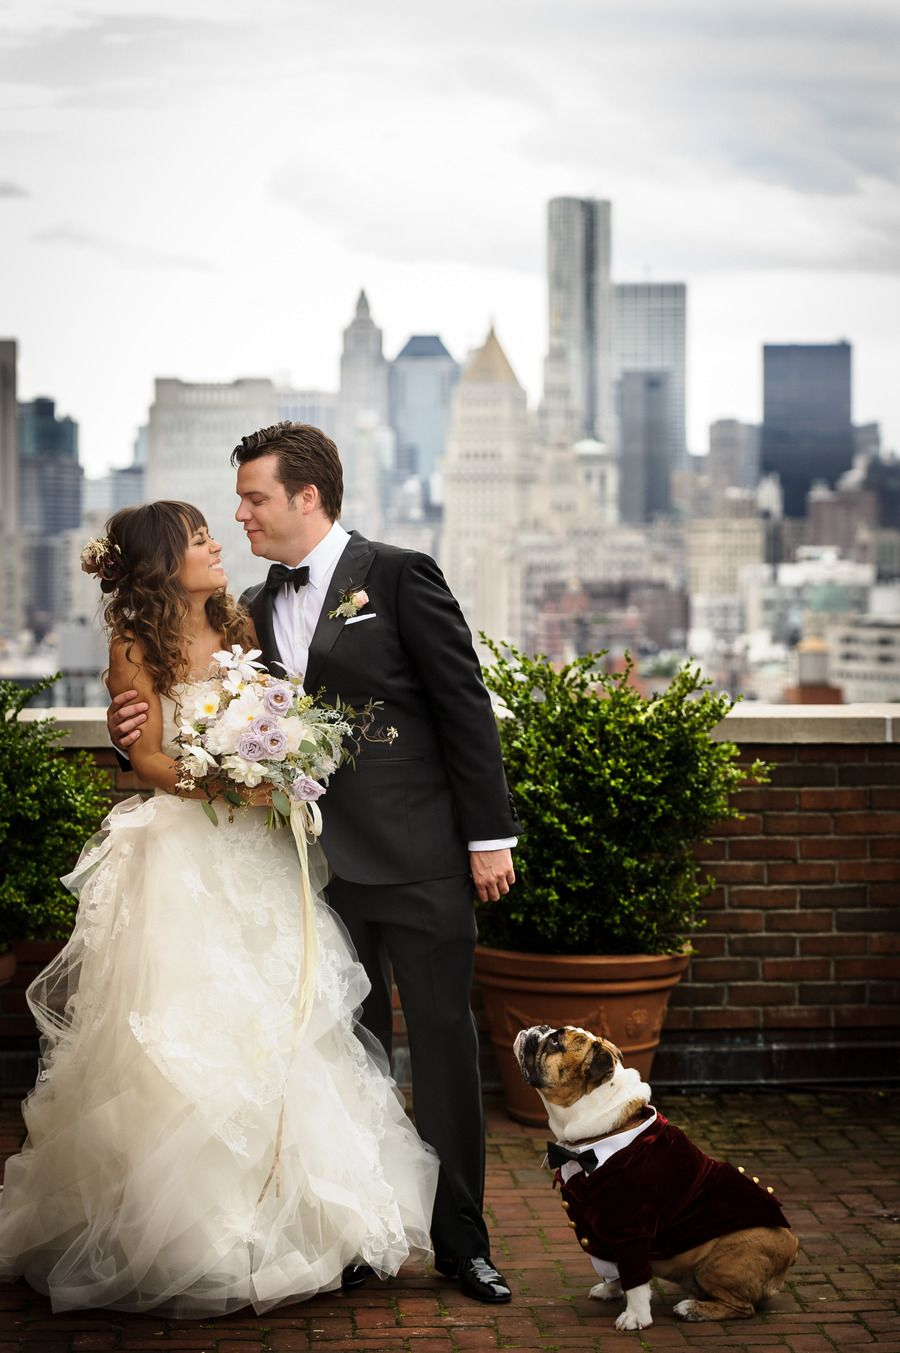 The Bowery Wedding From Susan Stripling Photography